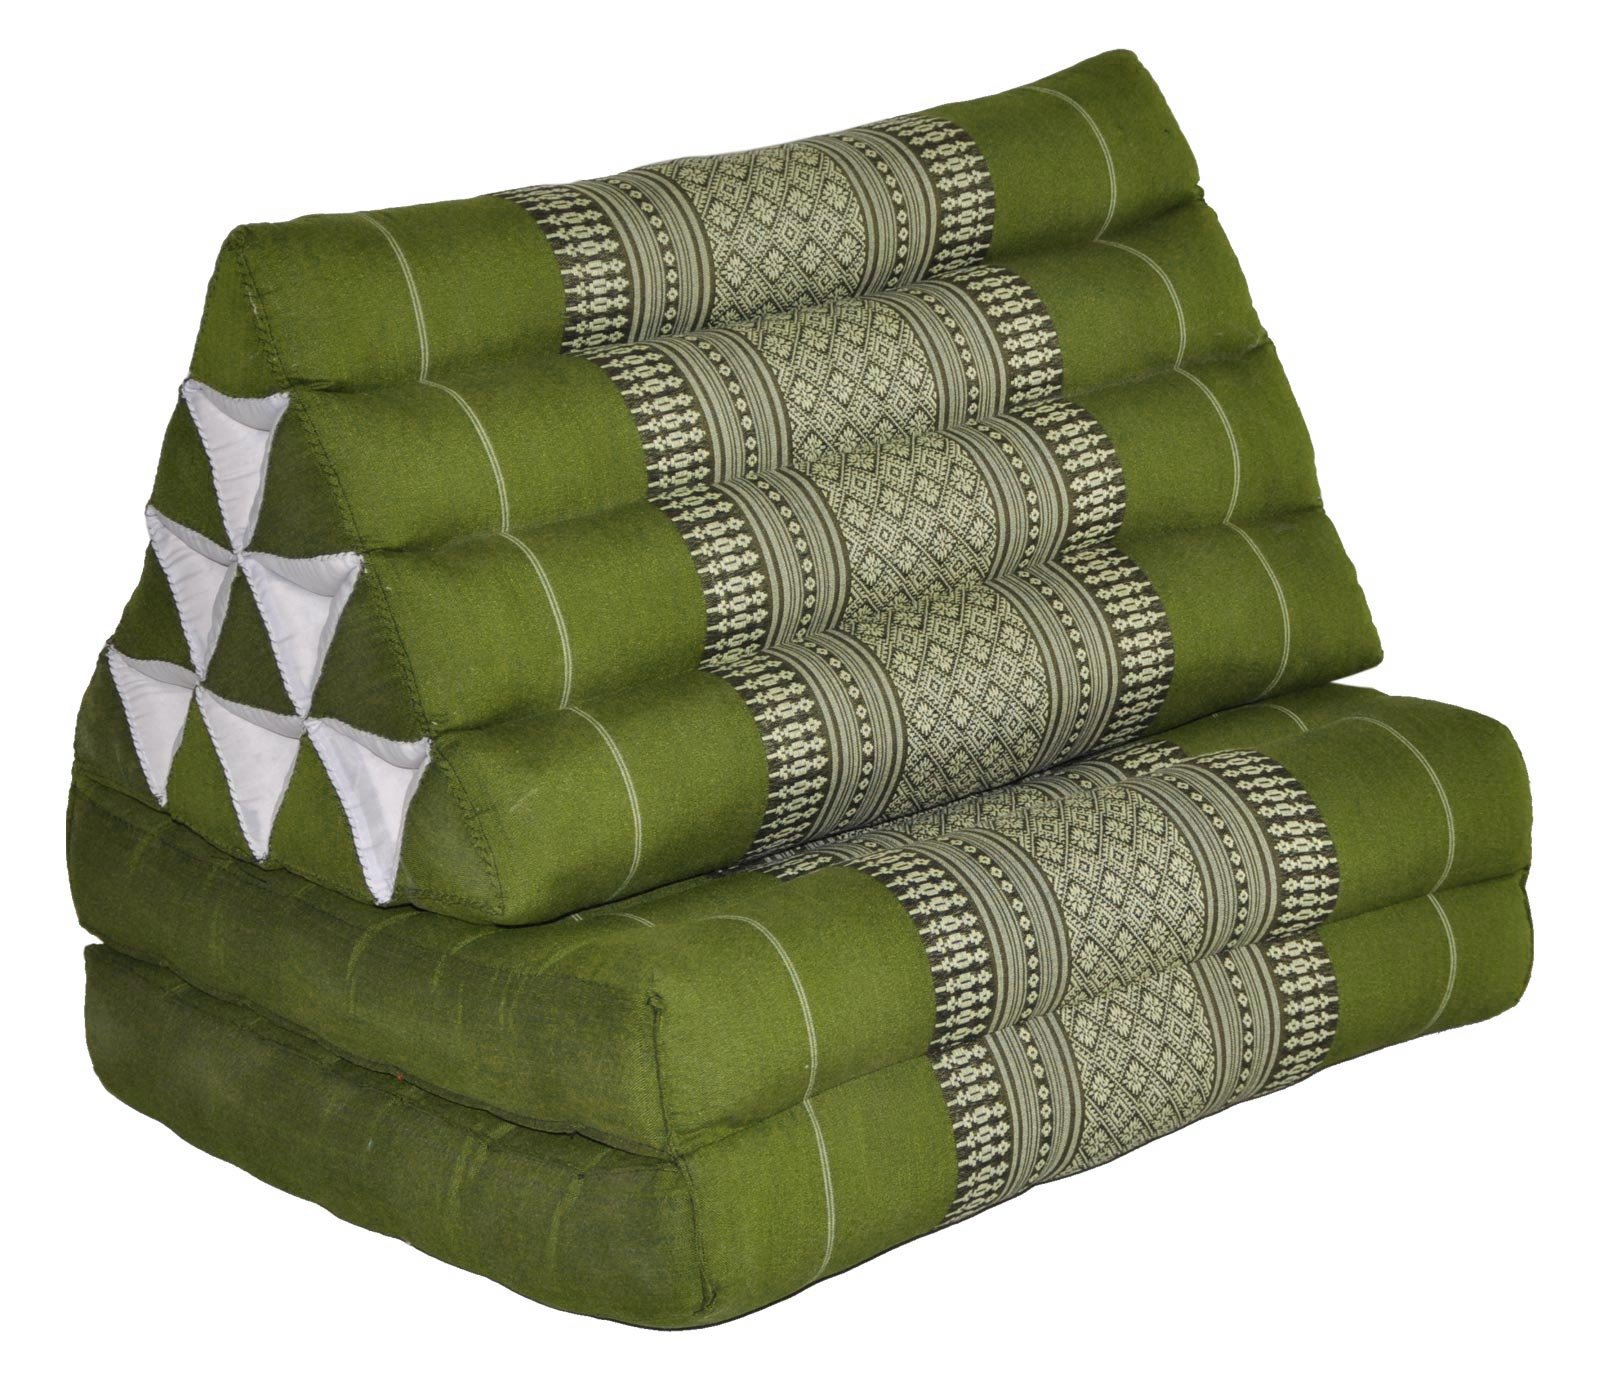 Tungyashop@thai Traditional Cushion Kapok Mattress (Green-white, 2 Fold) by NOINOI